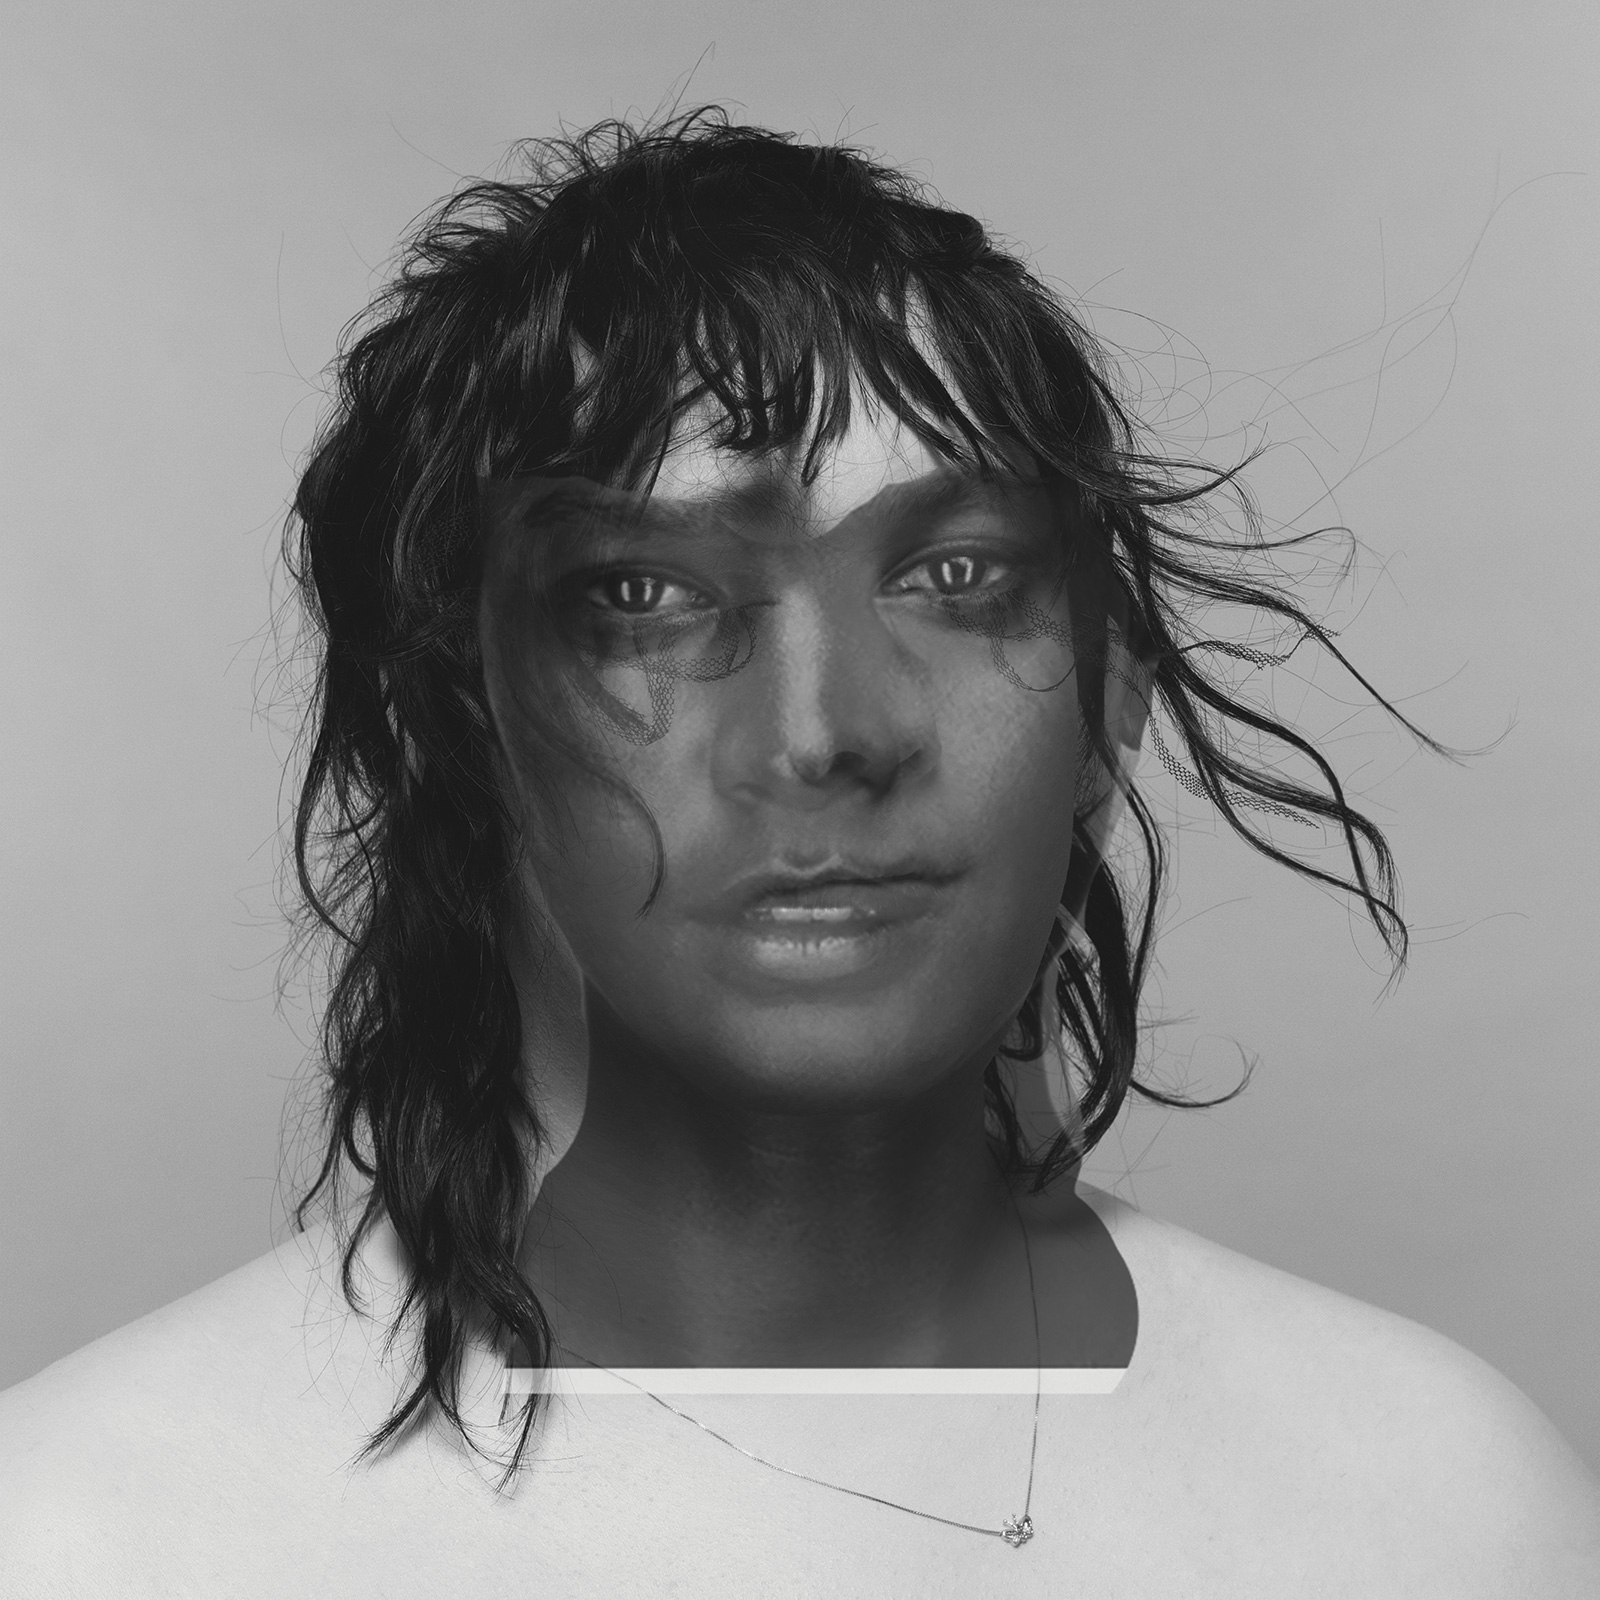 Coco Rosie and ANOHNI unveil collaborative protest song